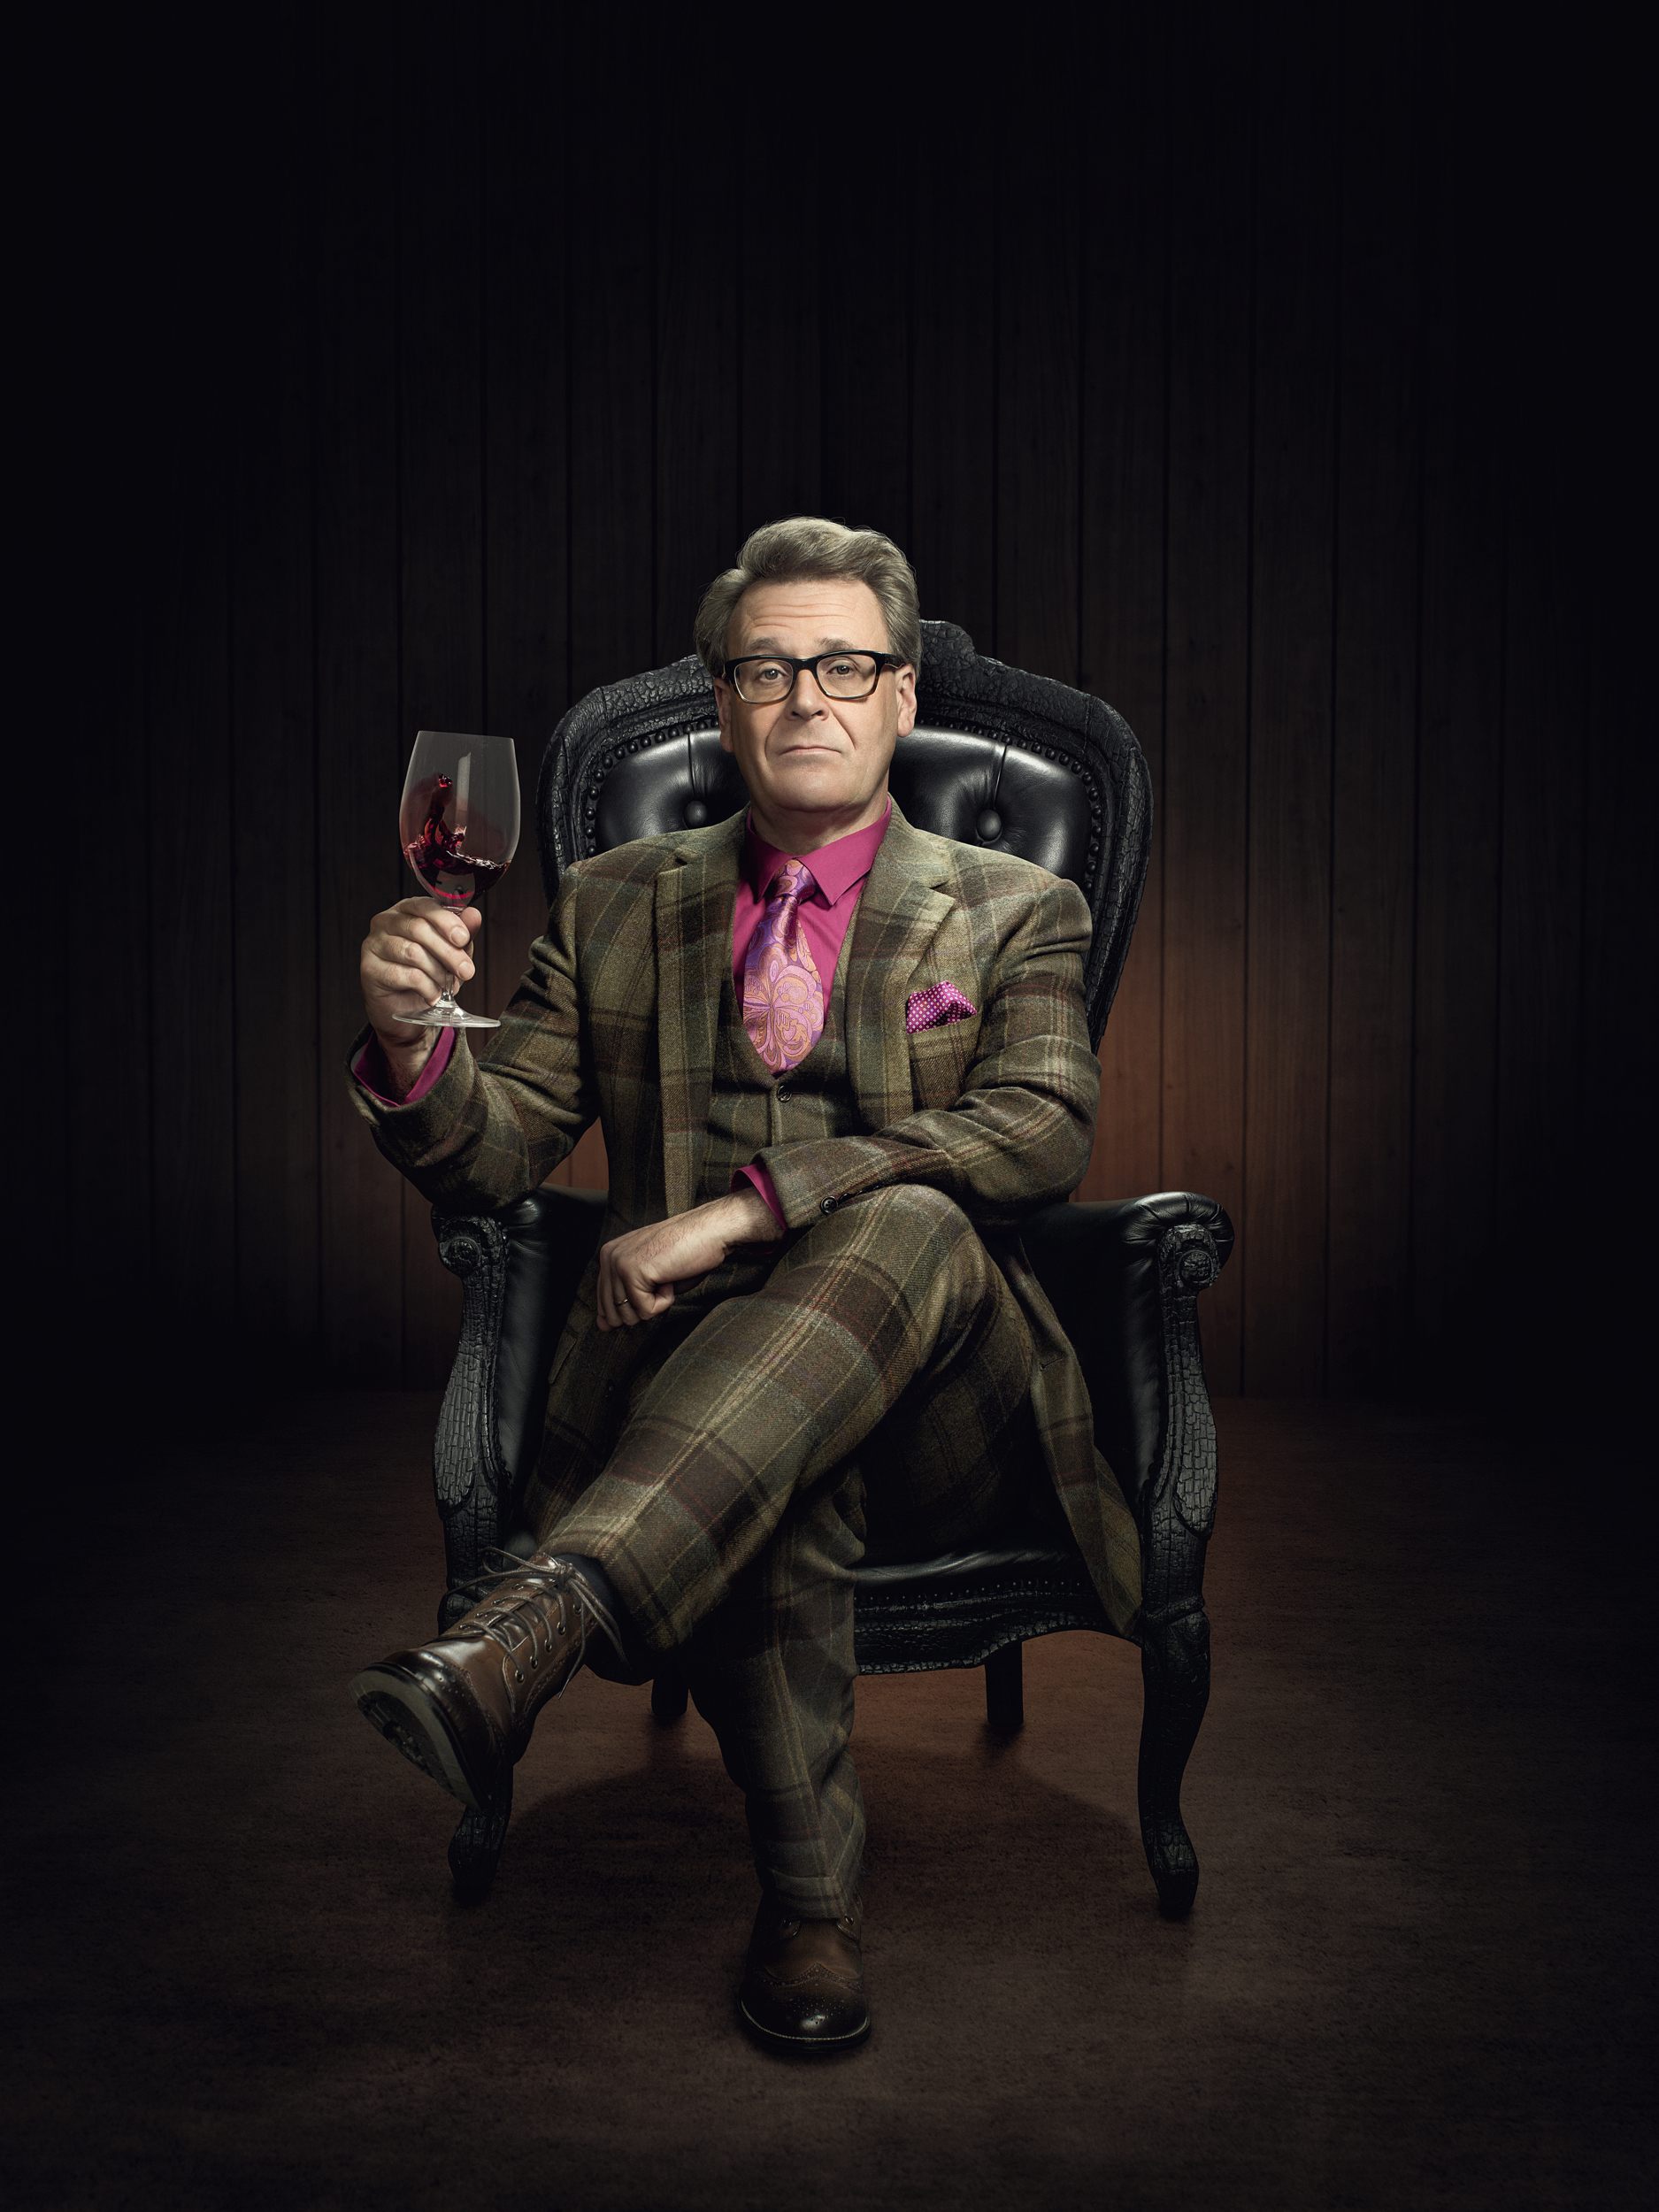 Portrait of Gregg Proops as The Recommendeuer for Washington Wine Commission by John Keatley